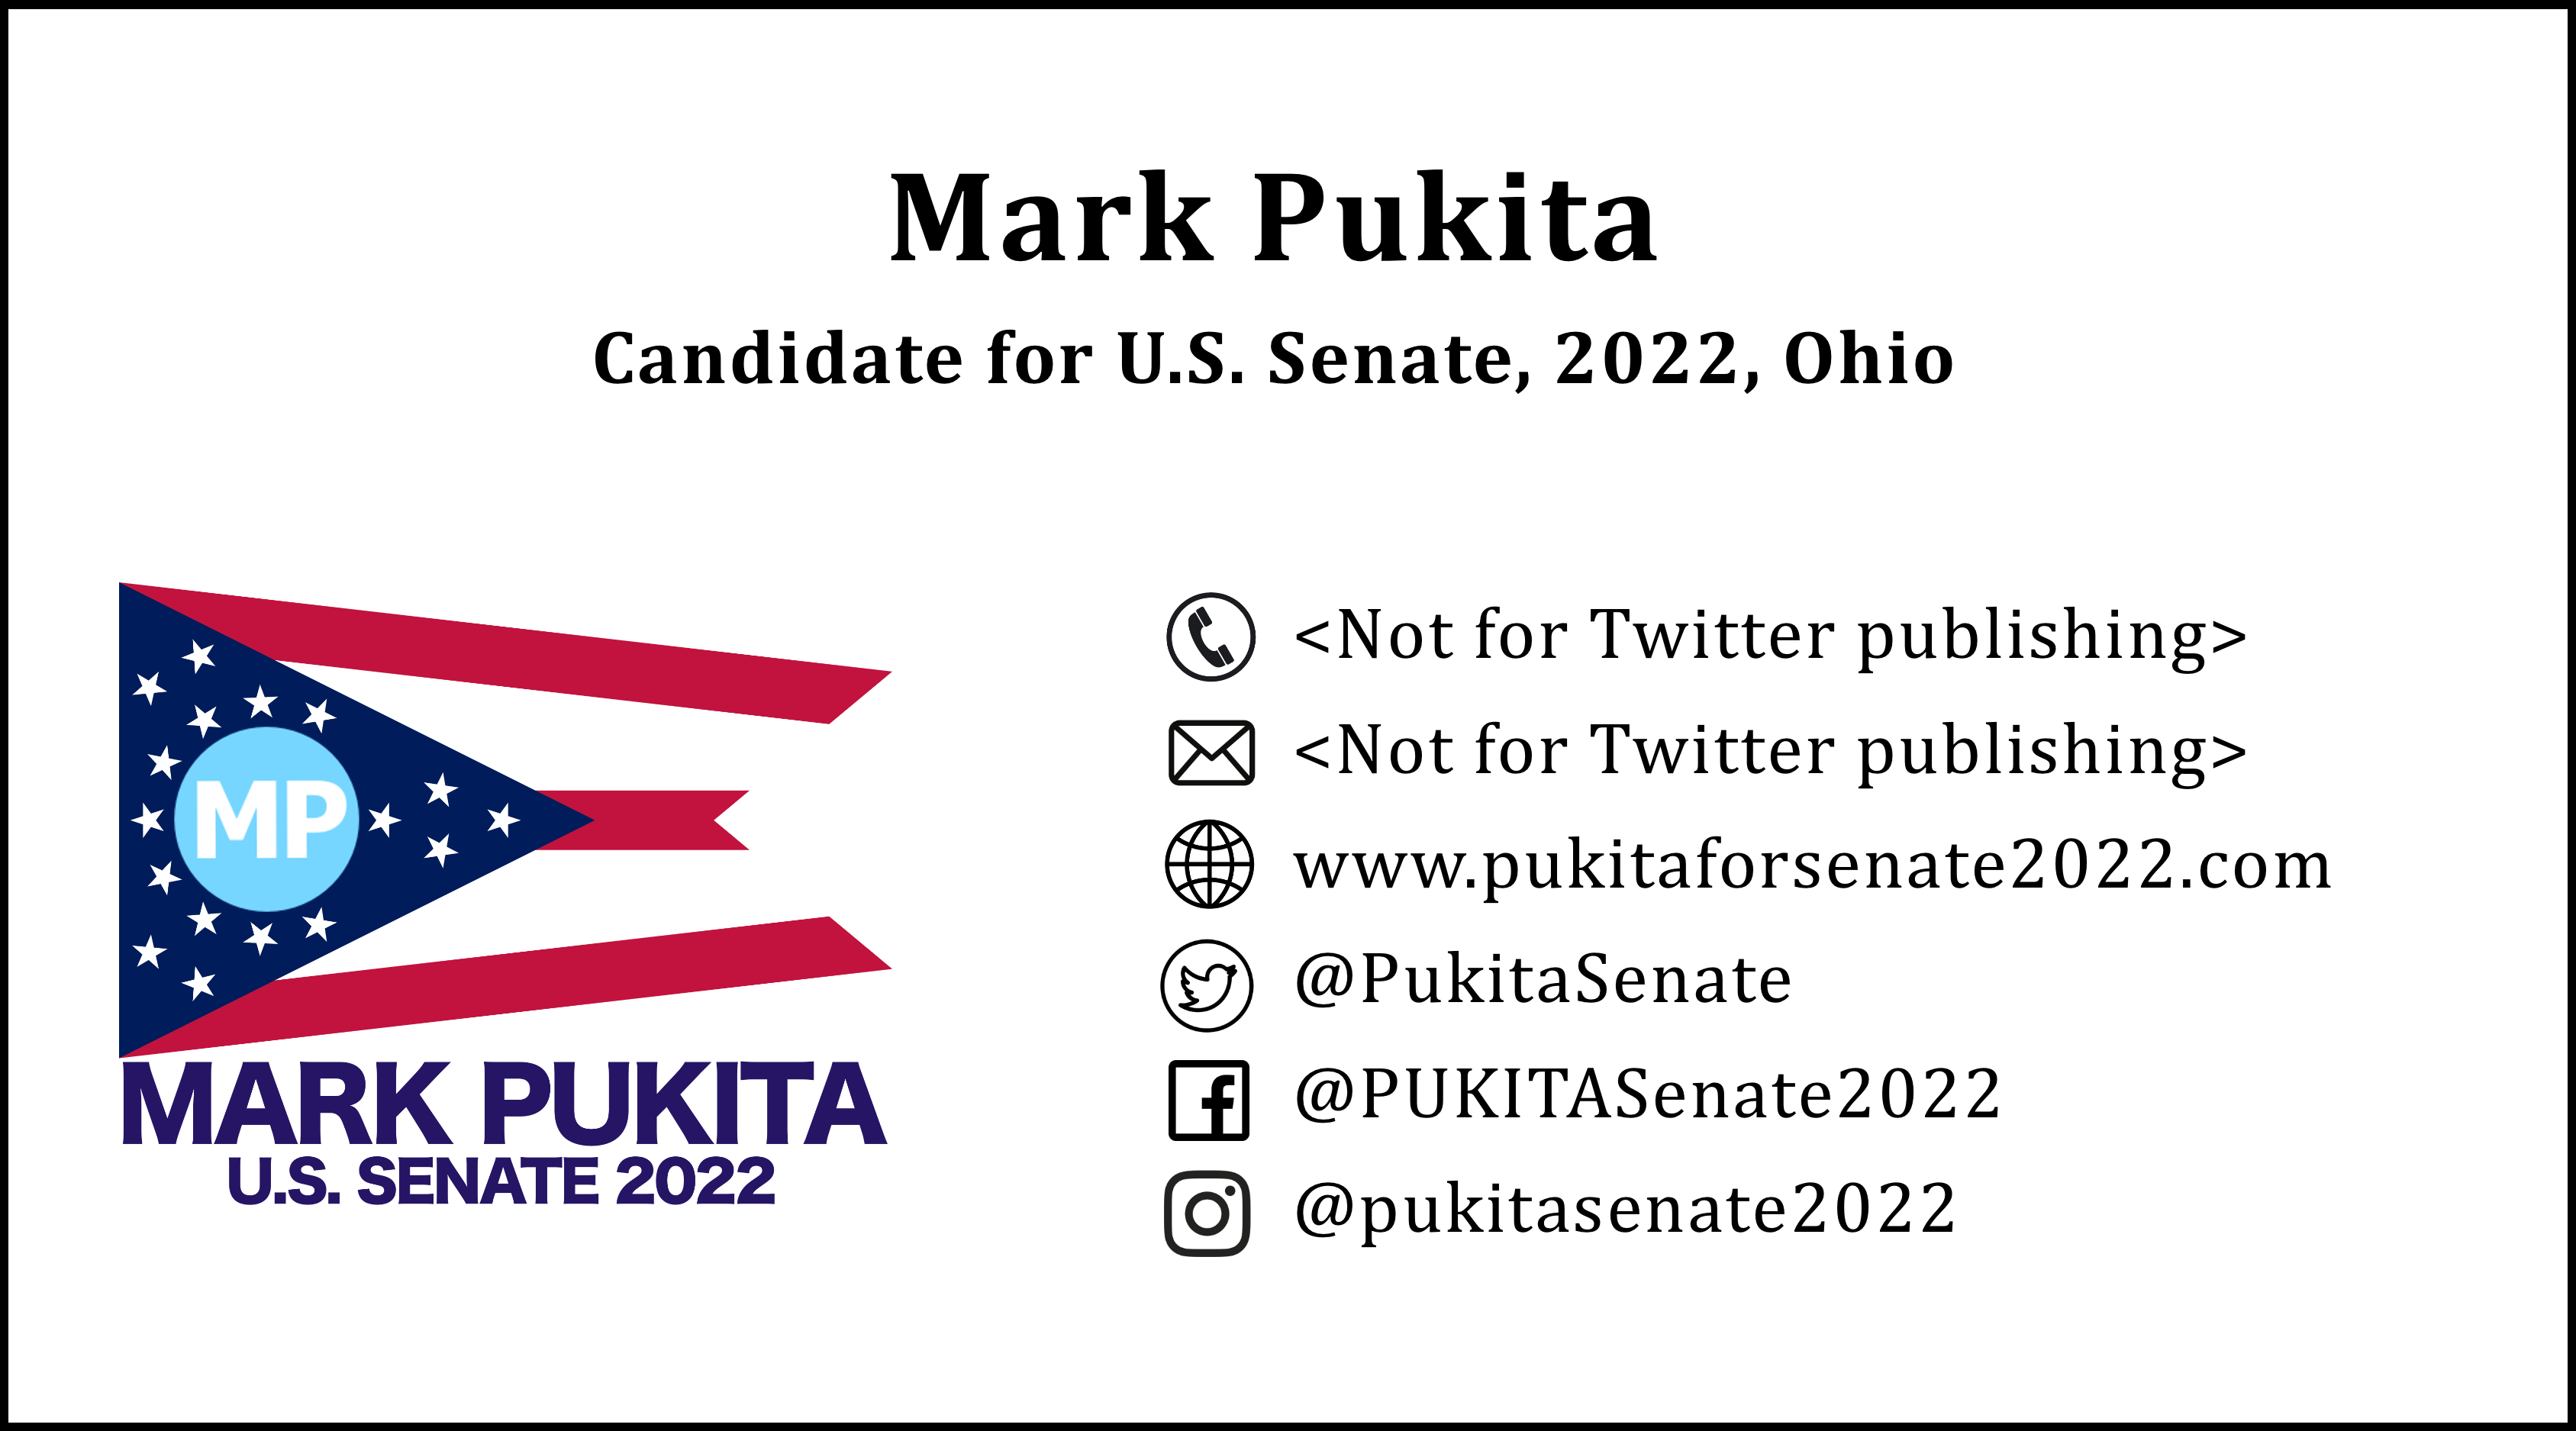 Pukita_for_Senate_Business_Card_-_for_Twitter.png